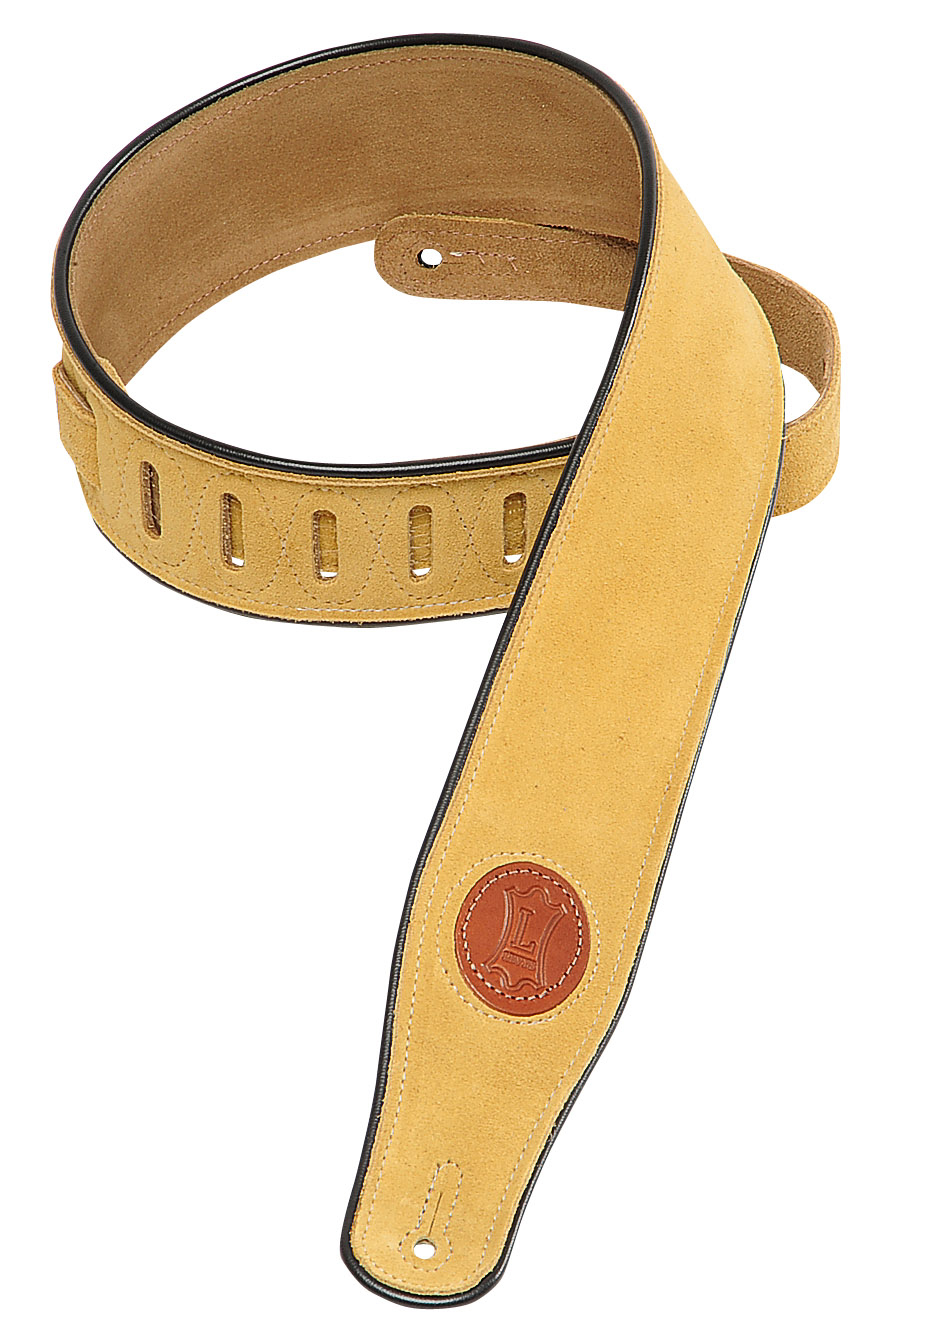 MSS3 Suede Leather Guitar Strap Tan: Strap